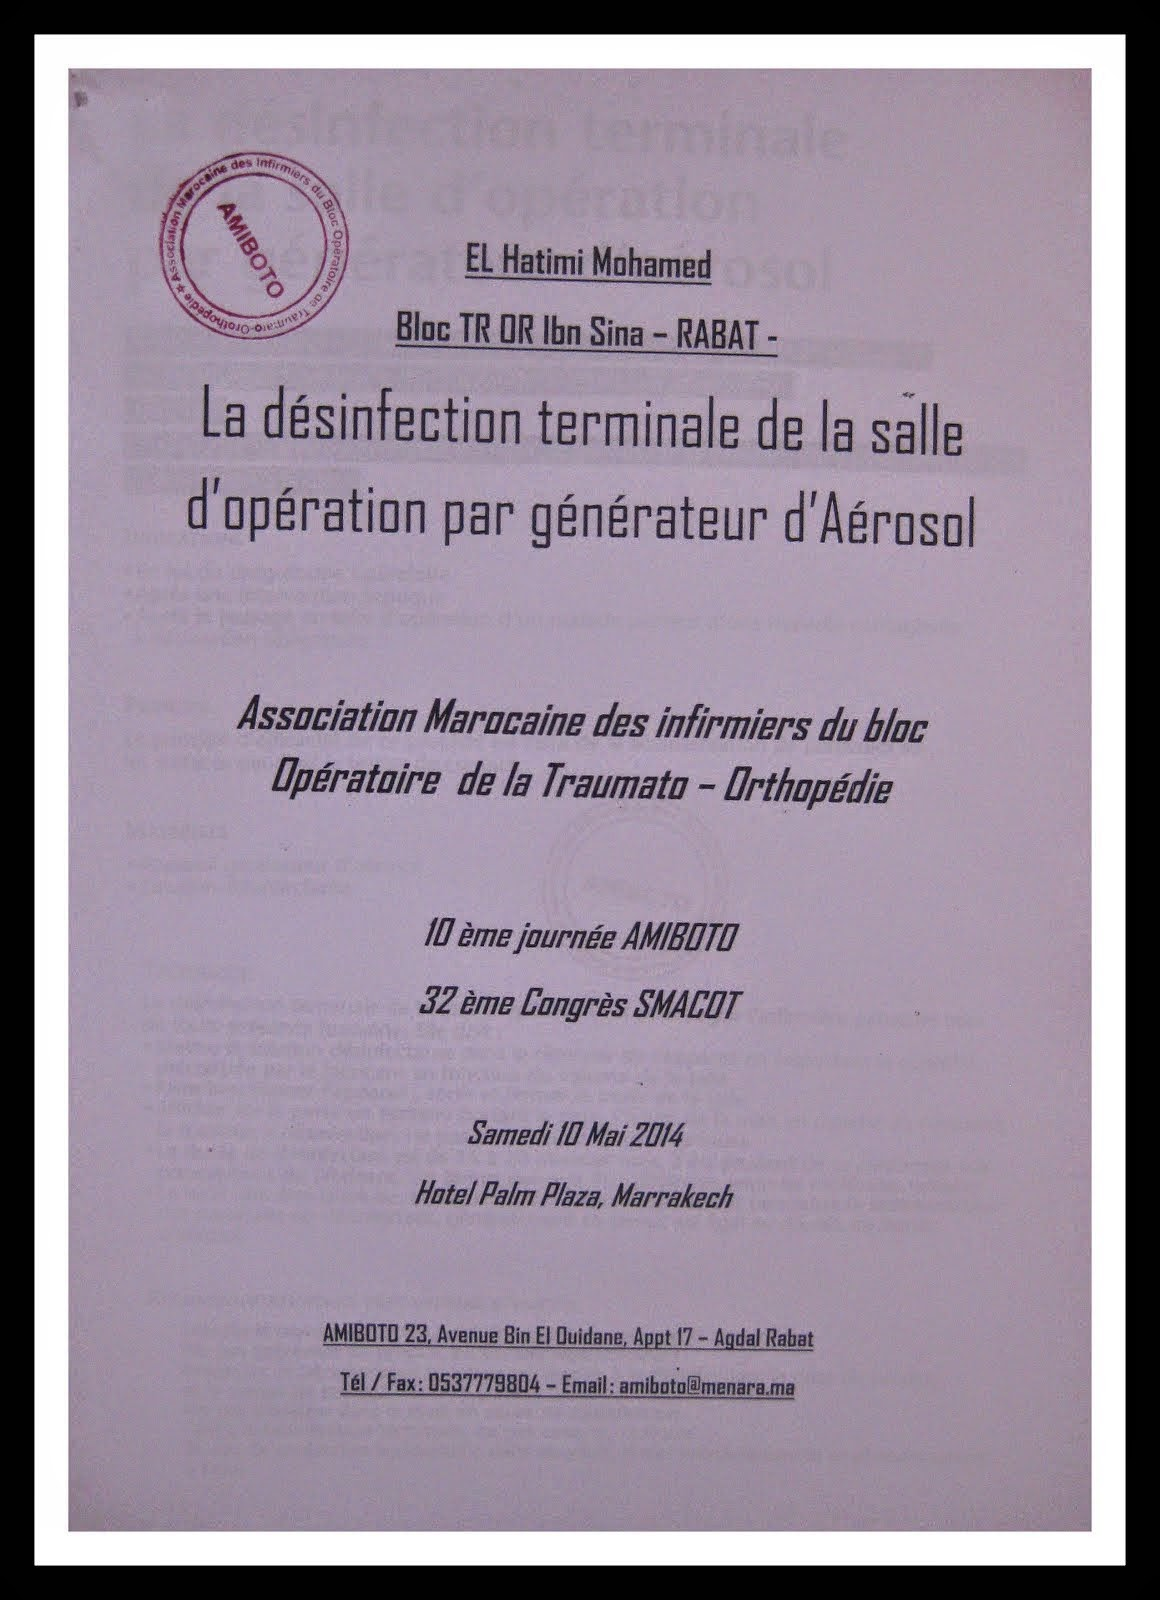 LA DESINFECTION TERMINALE DE LA SALLE D OPERATIPTION PAR GENERATEUR D AEROSOL